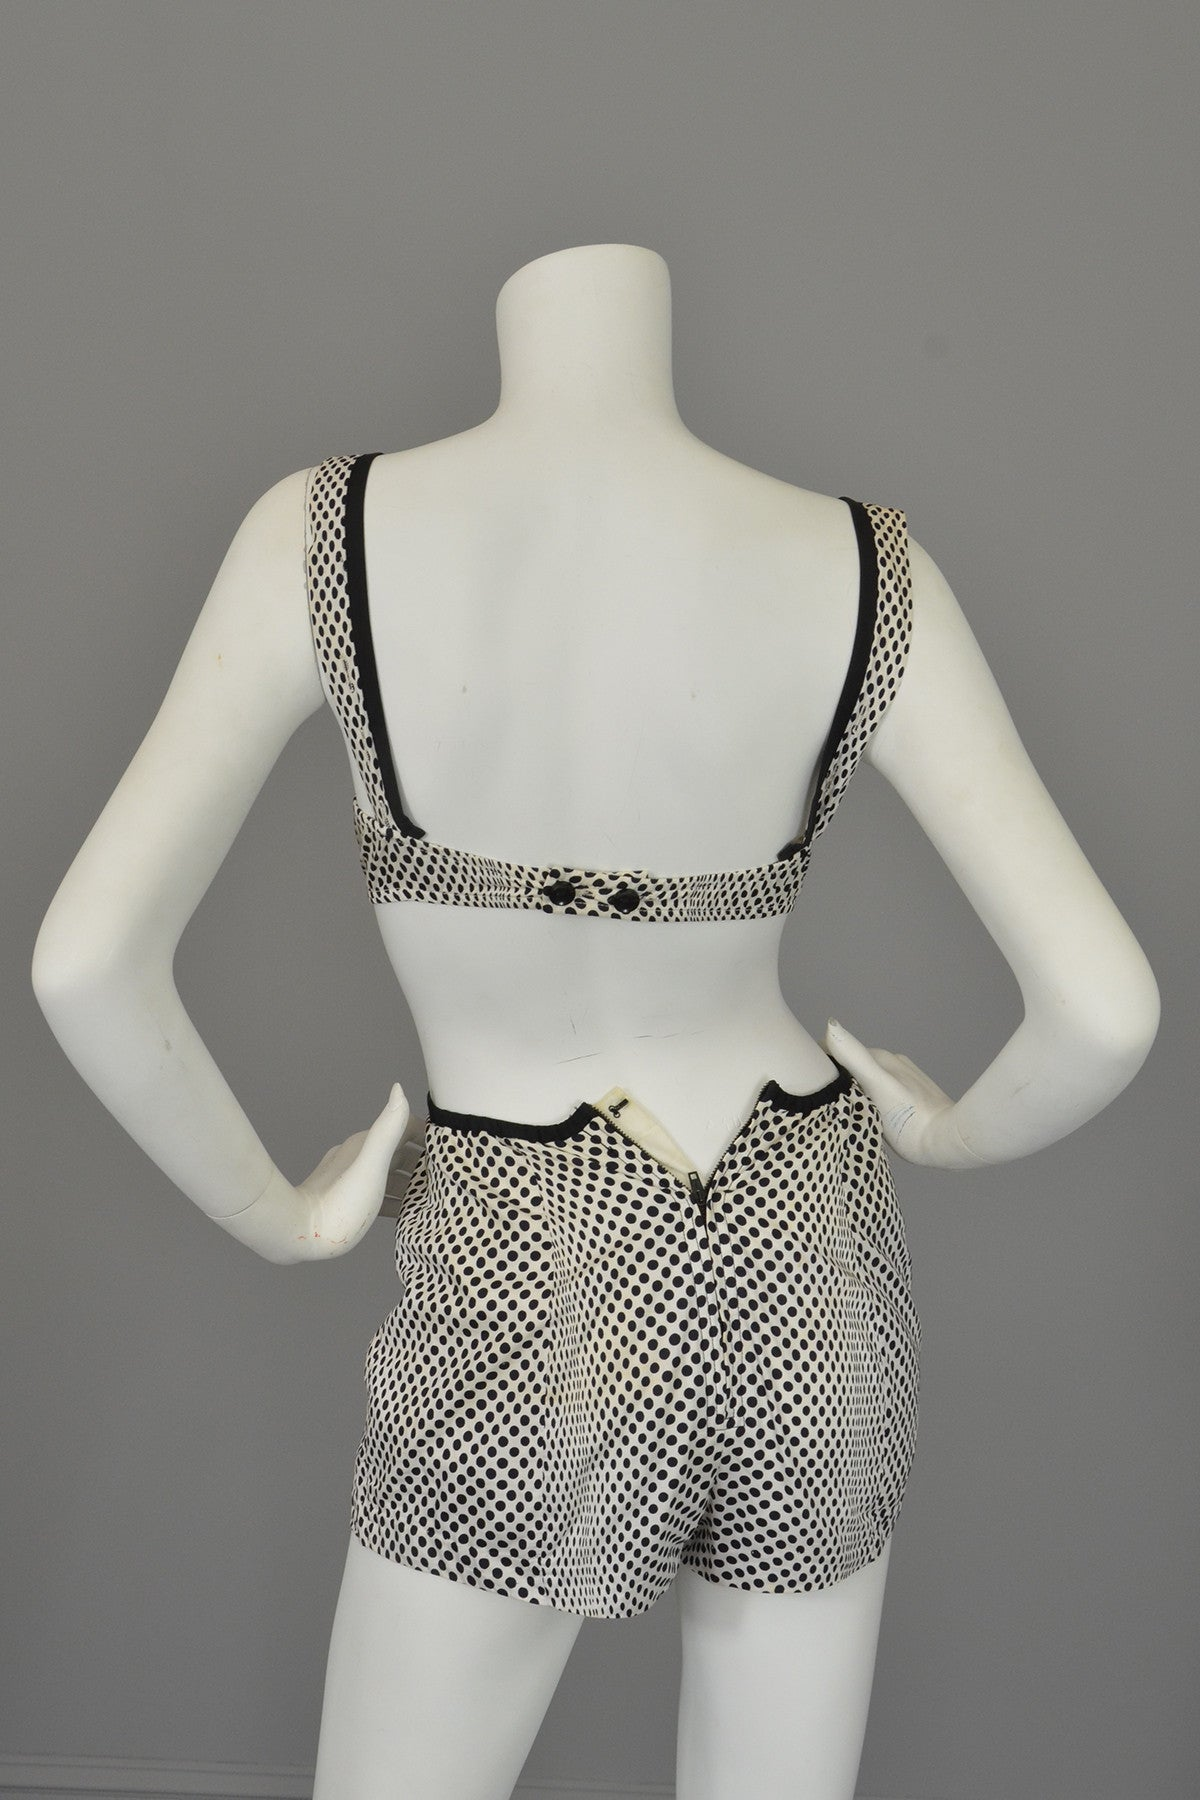 1960s Black White Polka Dot Pinup Swimsuit and matching Bull's Eye Cover-Up by Rose Marie Reid